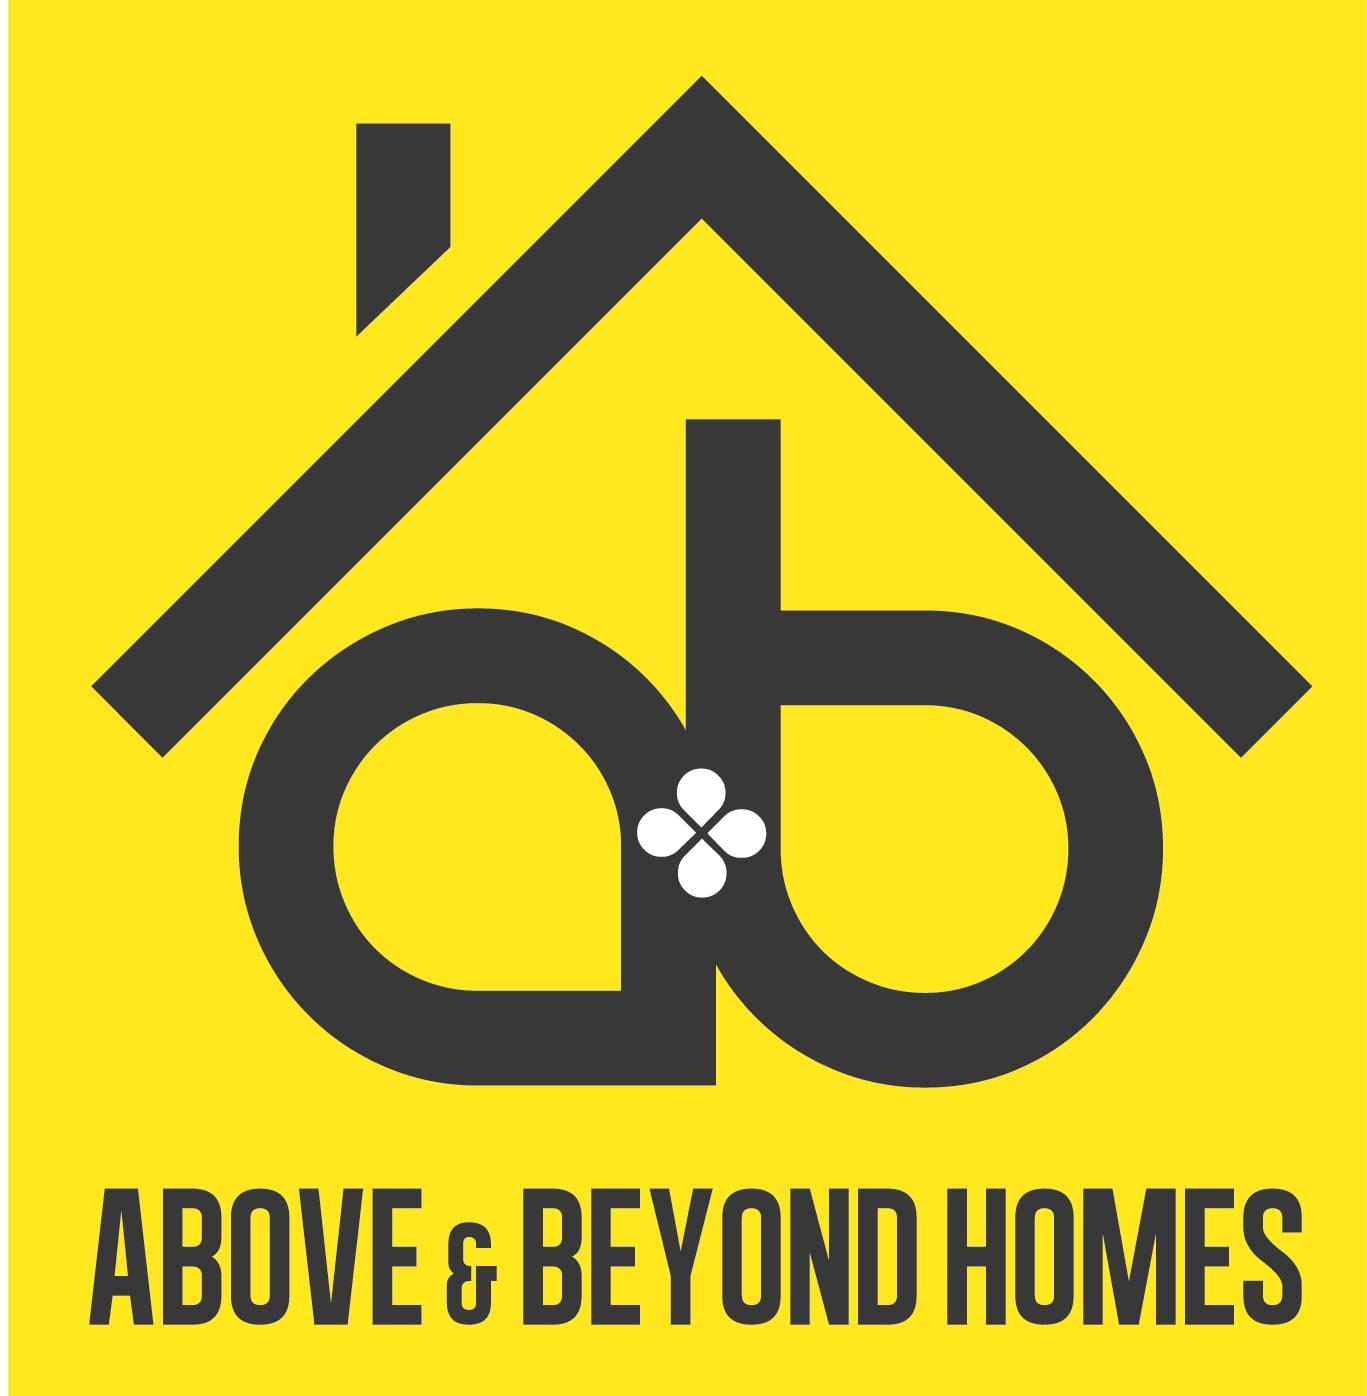 Above and Beyond Homes, LLC